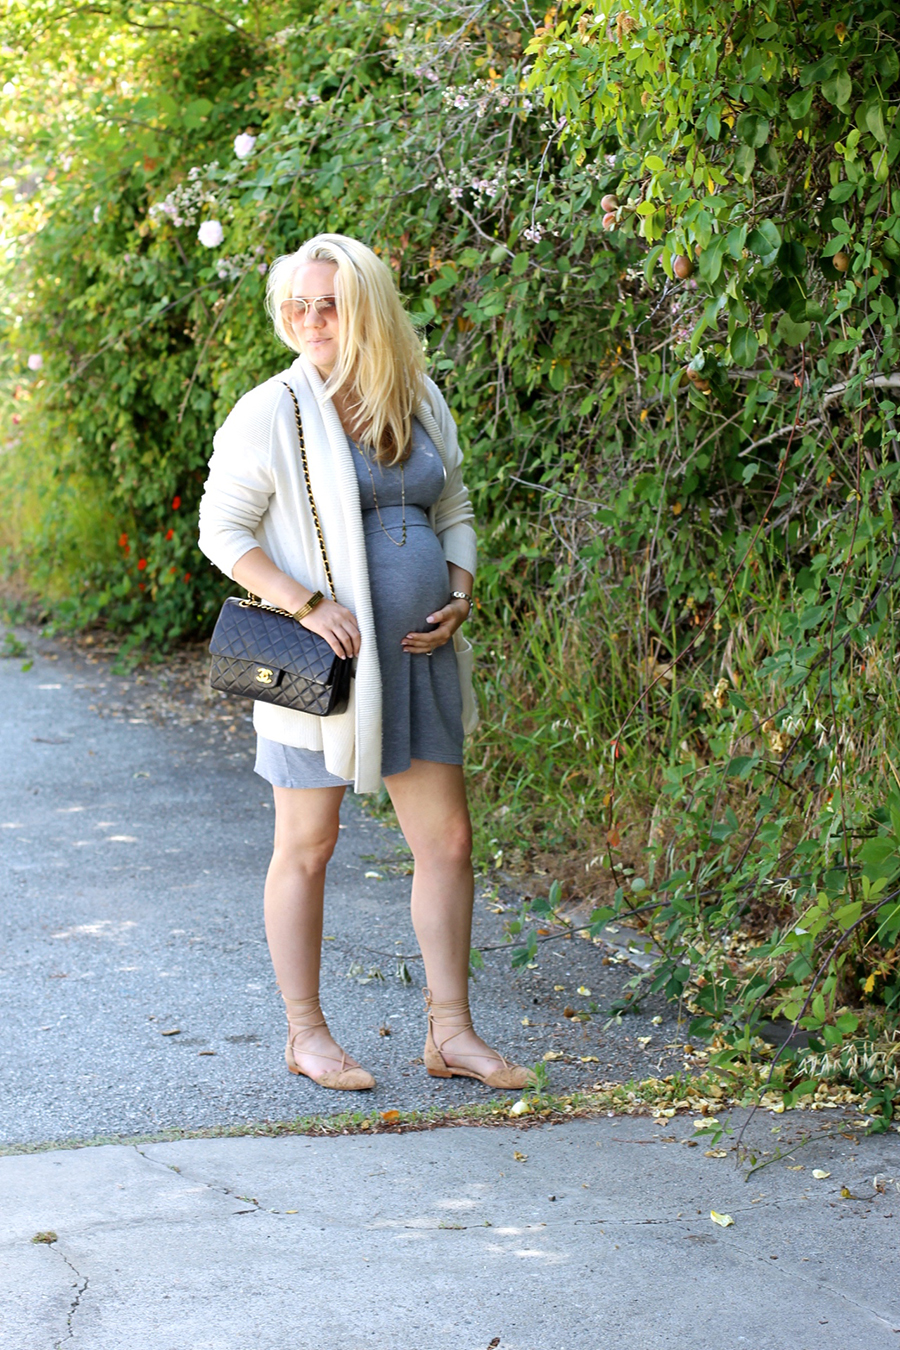 Grey Jersey Mini Dress-Maternity Style-Outfit Inspiration-Pregnancy Style-Have Need Want 8